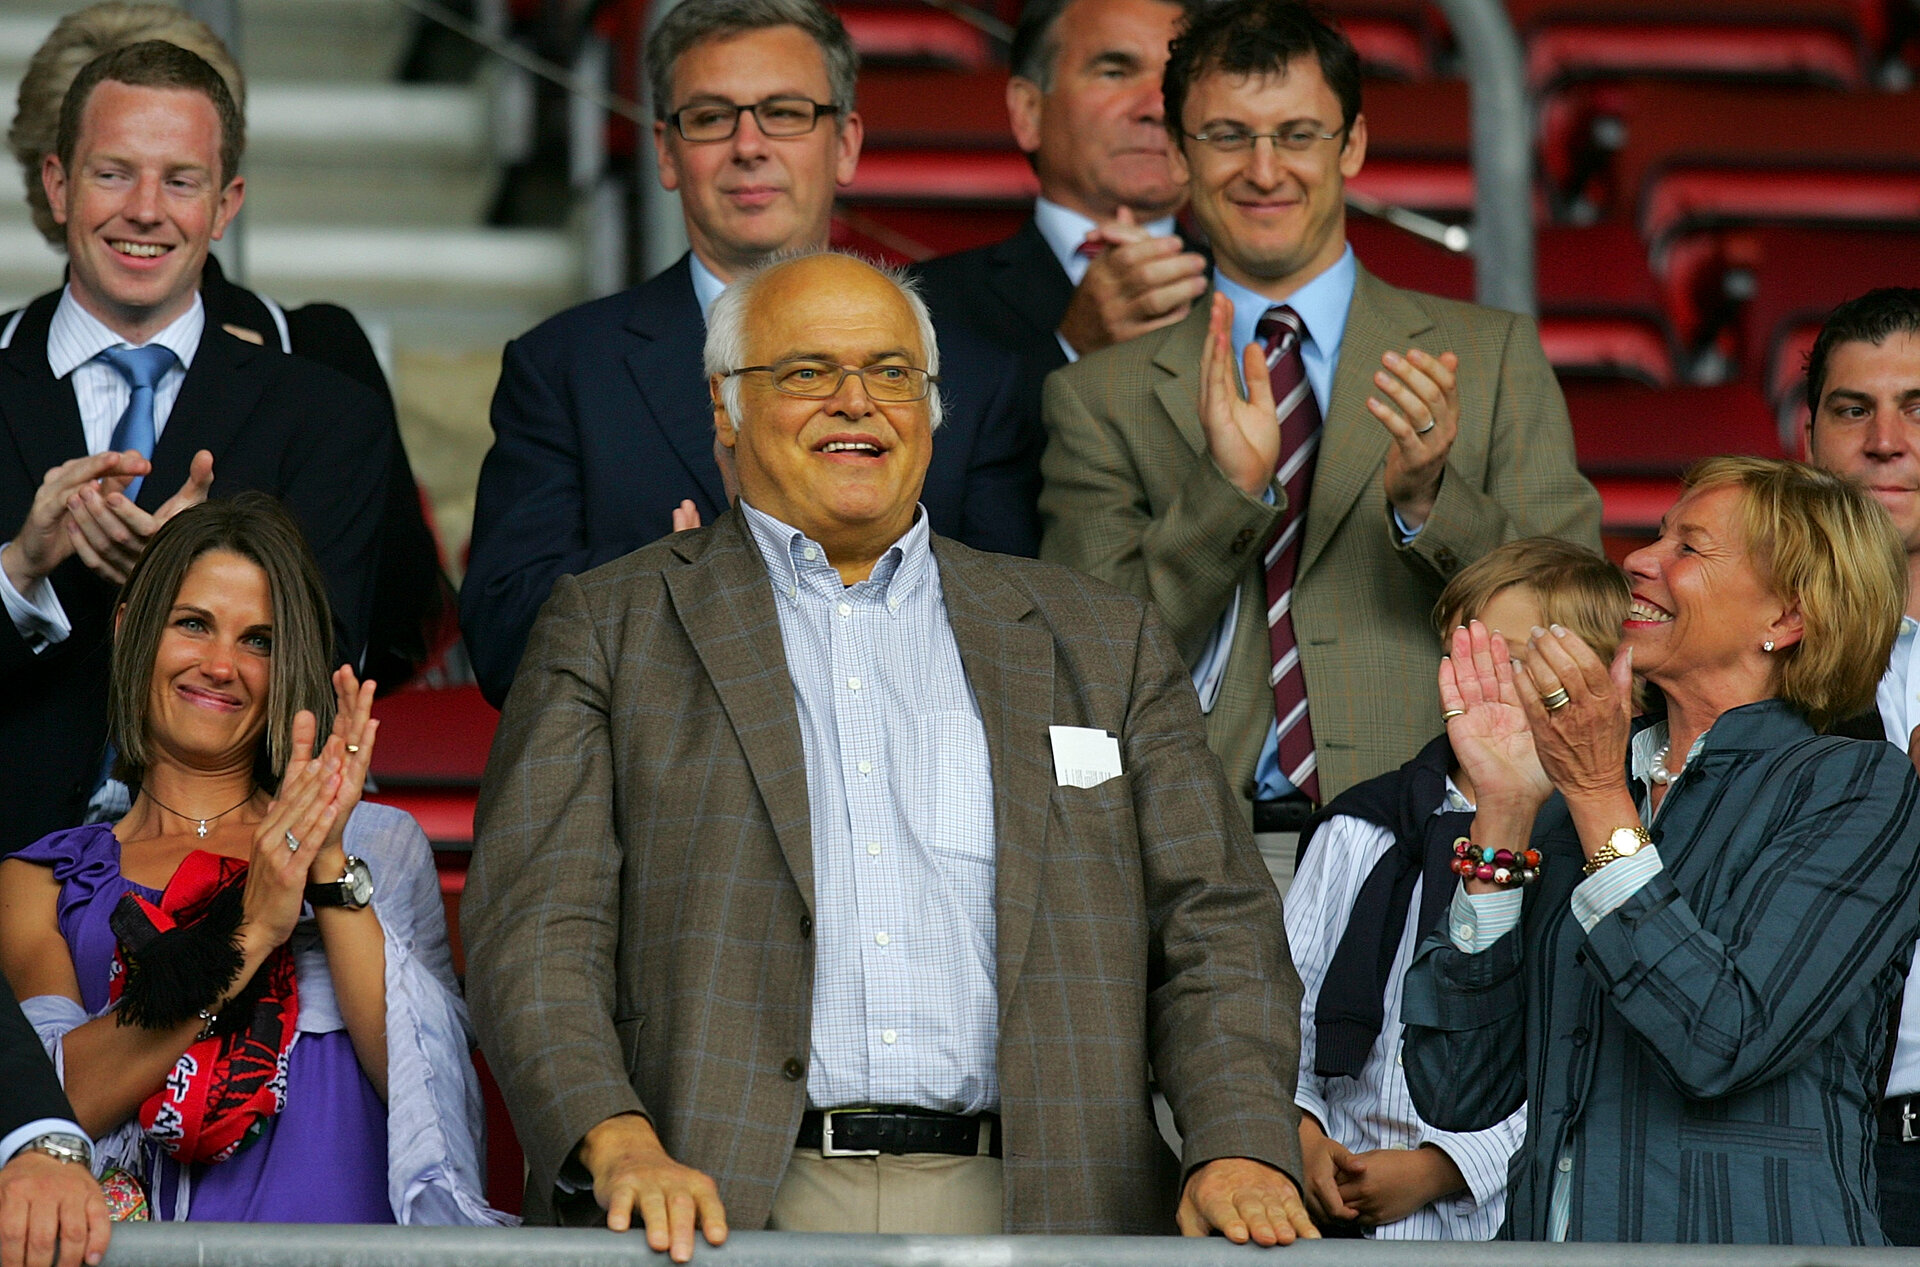 SOUTHAMPTON, ENGLAND - JULY 18: New owner of the Southampton Club Markus Liebherr looks on prior to the Pre Season Friendly match between Southampton and Ajax at St Mary's Stadium on July 18, 2009 in Southampton, England. (Photo by Tom Dulat/Getty Images)